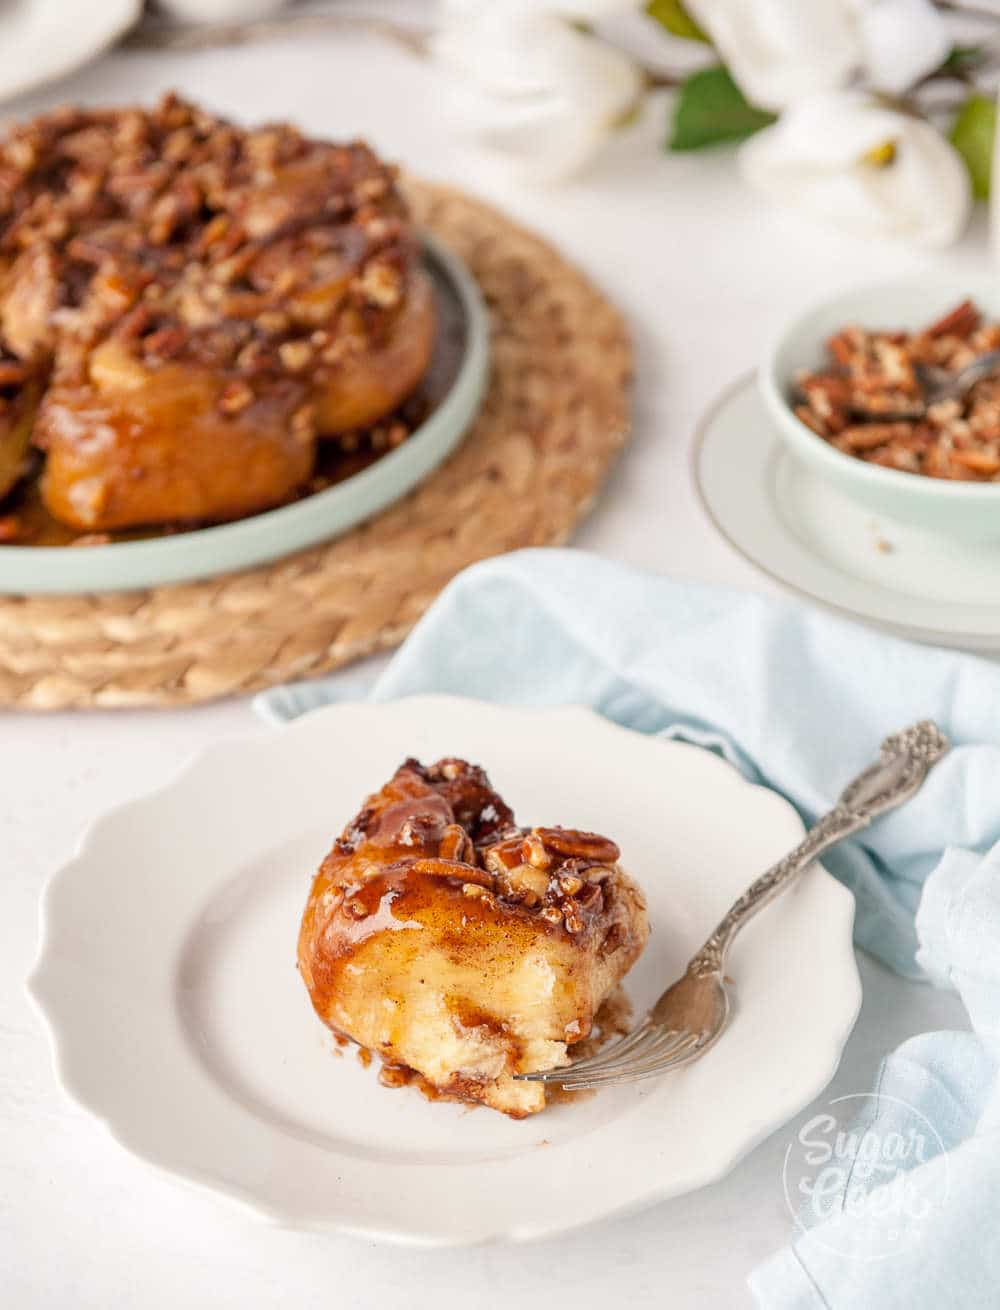 homemade sticky buns on a white plate